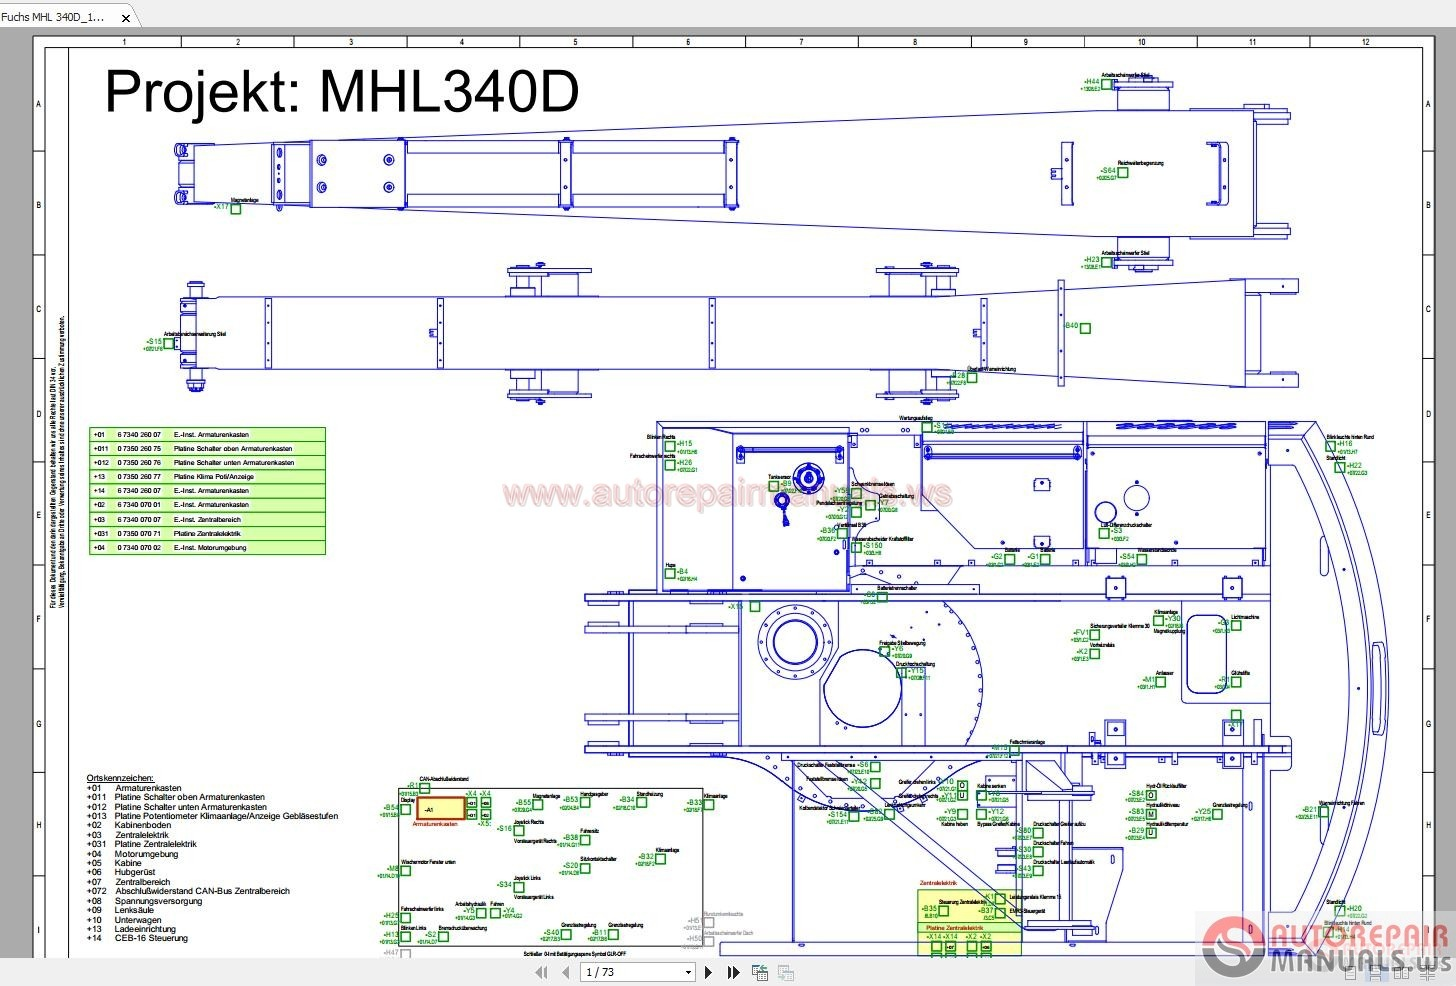 Terex Fuchs Mhl 340d 1350 Wiring Diagram Auto Repair Manual Forum Diagrams Click Here Download